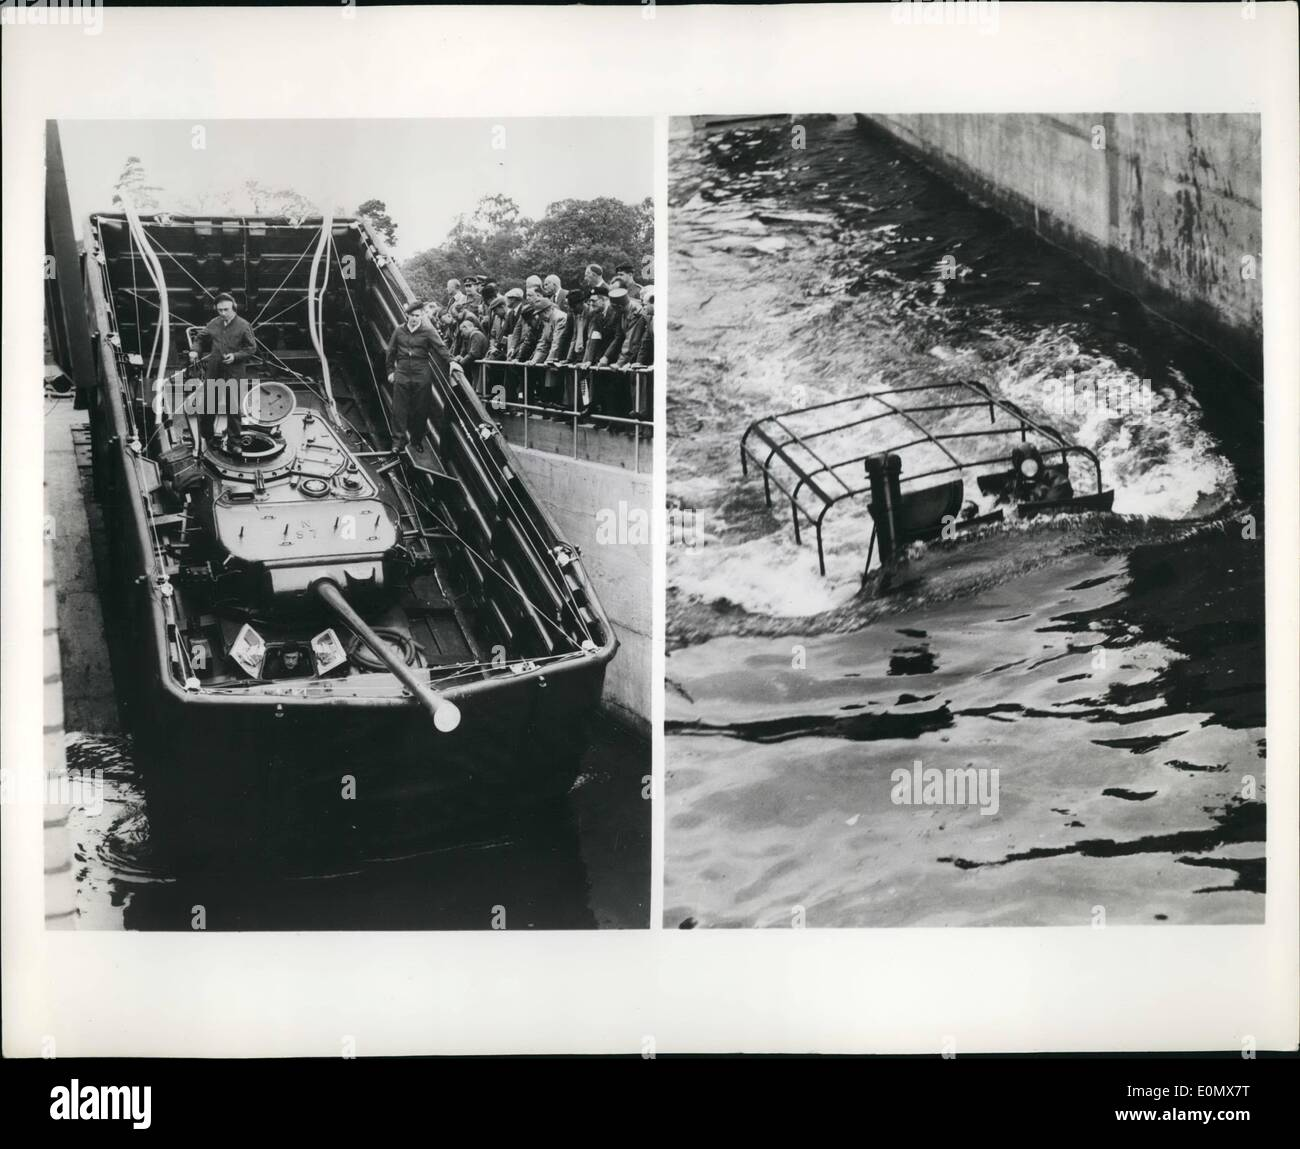 Oct. 10, 1956 - Land Warfare takes to water: Representatives of many foreign armies, including those from Russia and Germany, saw a recent demonstration at the British Ministry of Supply's Fighting Vehicles Research and Development Establishment in Surrey, England. Photo shows left: 50-ton Centurion tank plunges into a wading pit and begins to float. It has a collapsible waterproof screen around the top surfaces so that turret lids can be left open - Stock Image